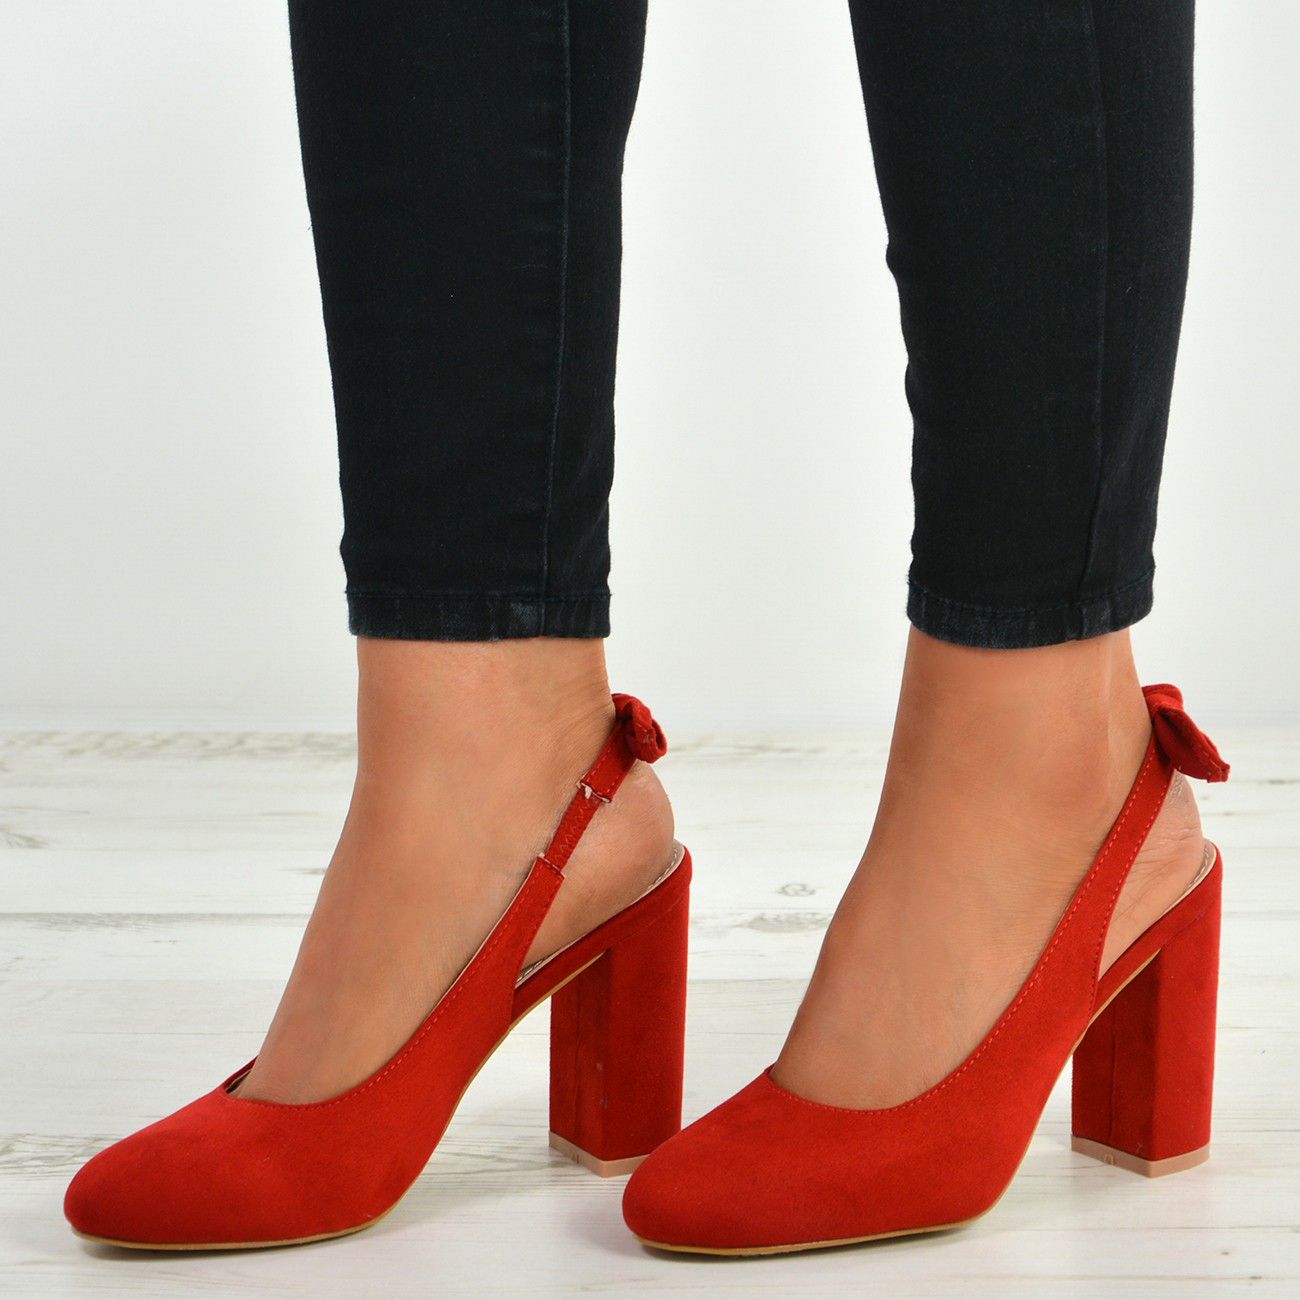 New-Womens-Ladies-Sling-Back-Pumps-High-Block-Heels-Comfy-Fashion-Shoes-Size-Uk